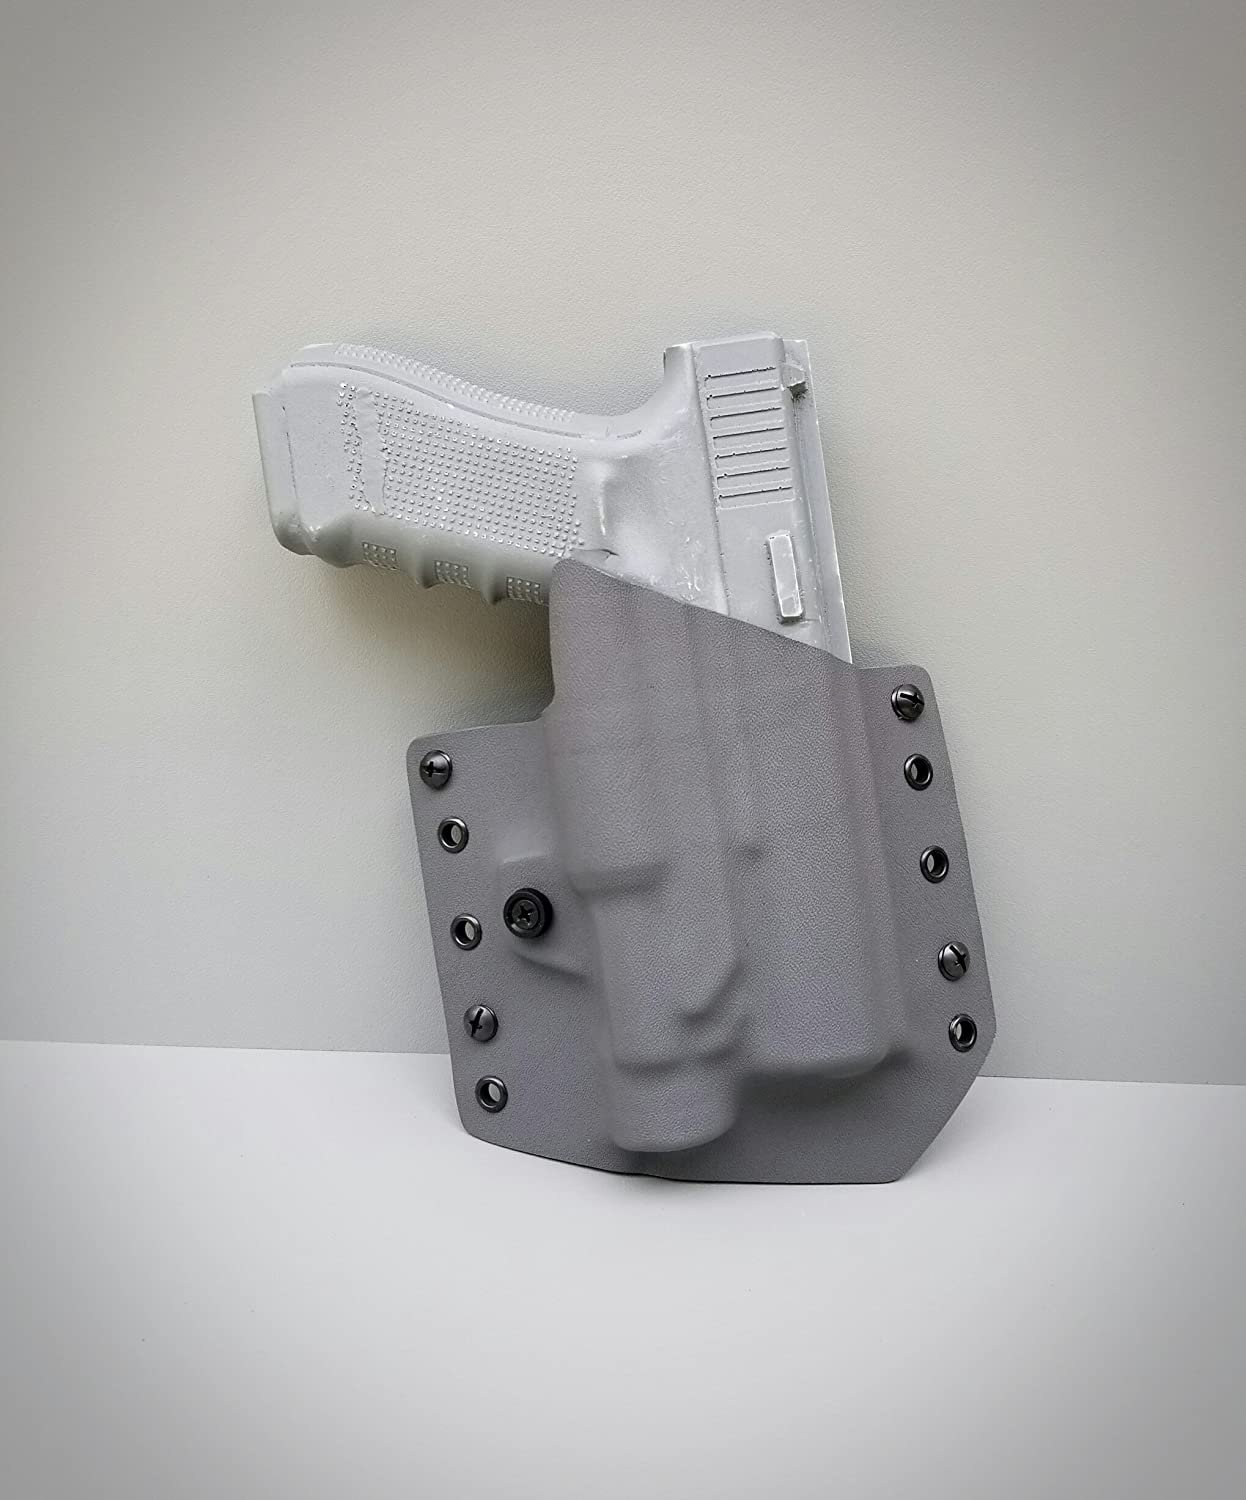 Neptune Concealment Kydex Gun Holster for M&P 2.0 4.25